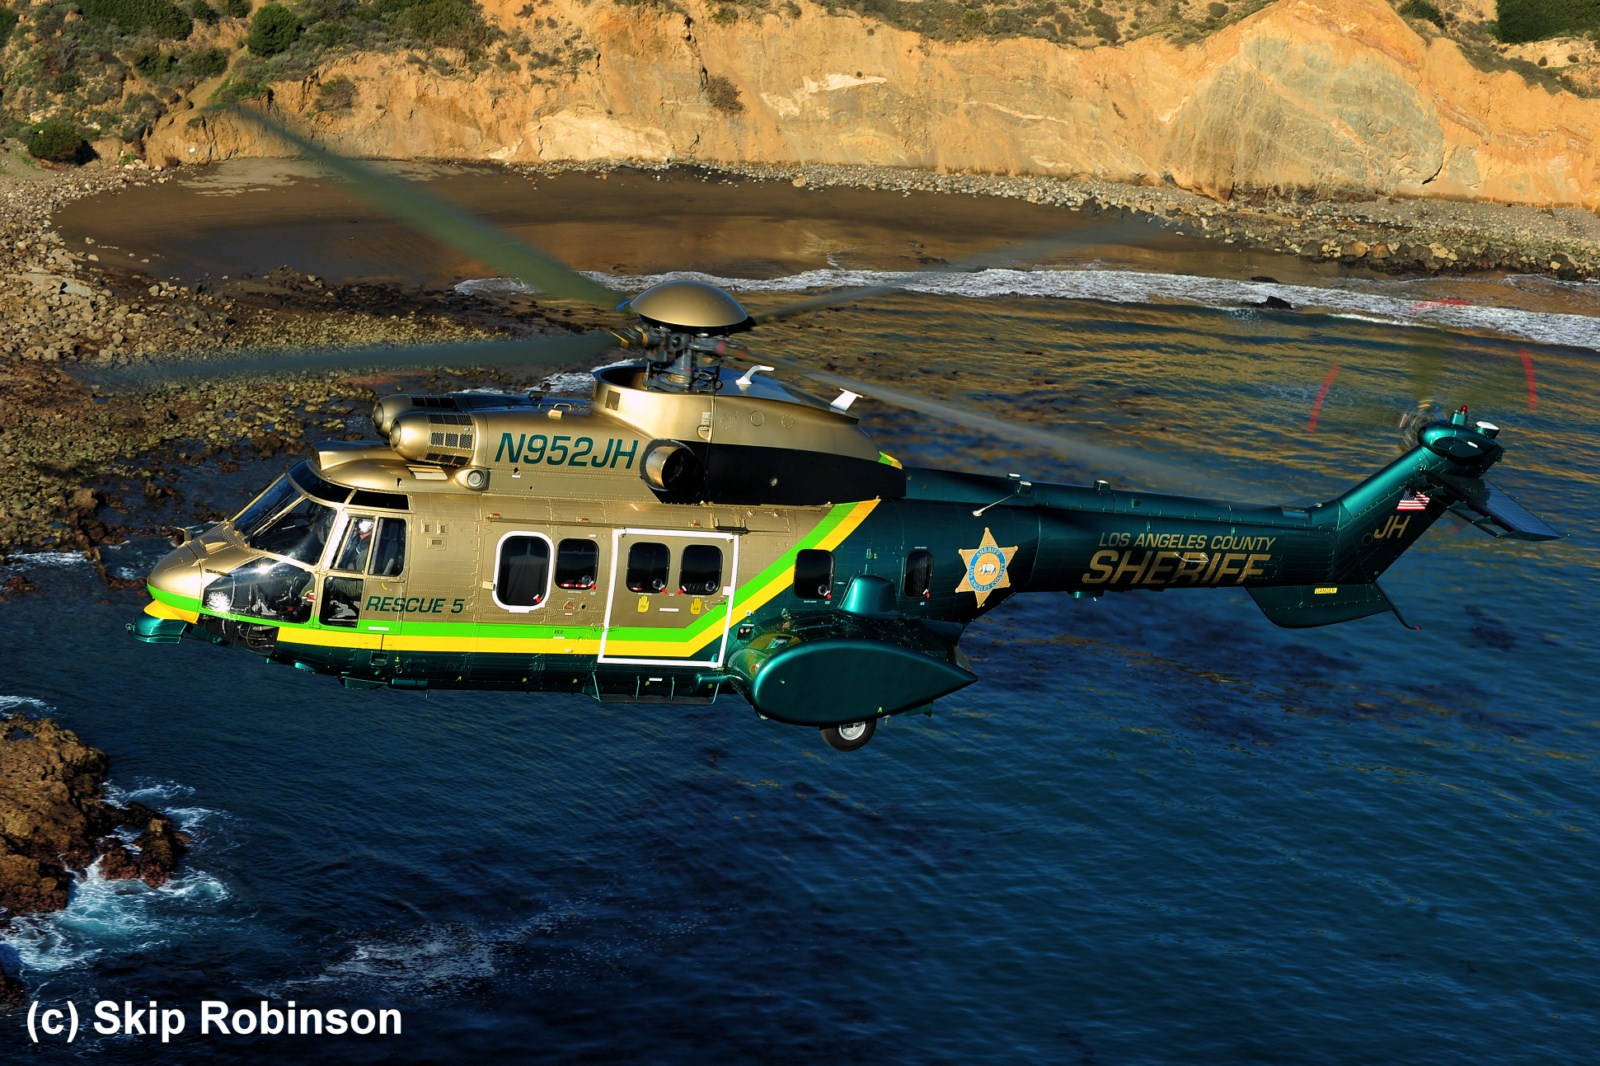 LASD AS332_Skip Robinson